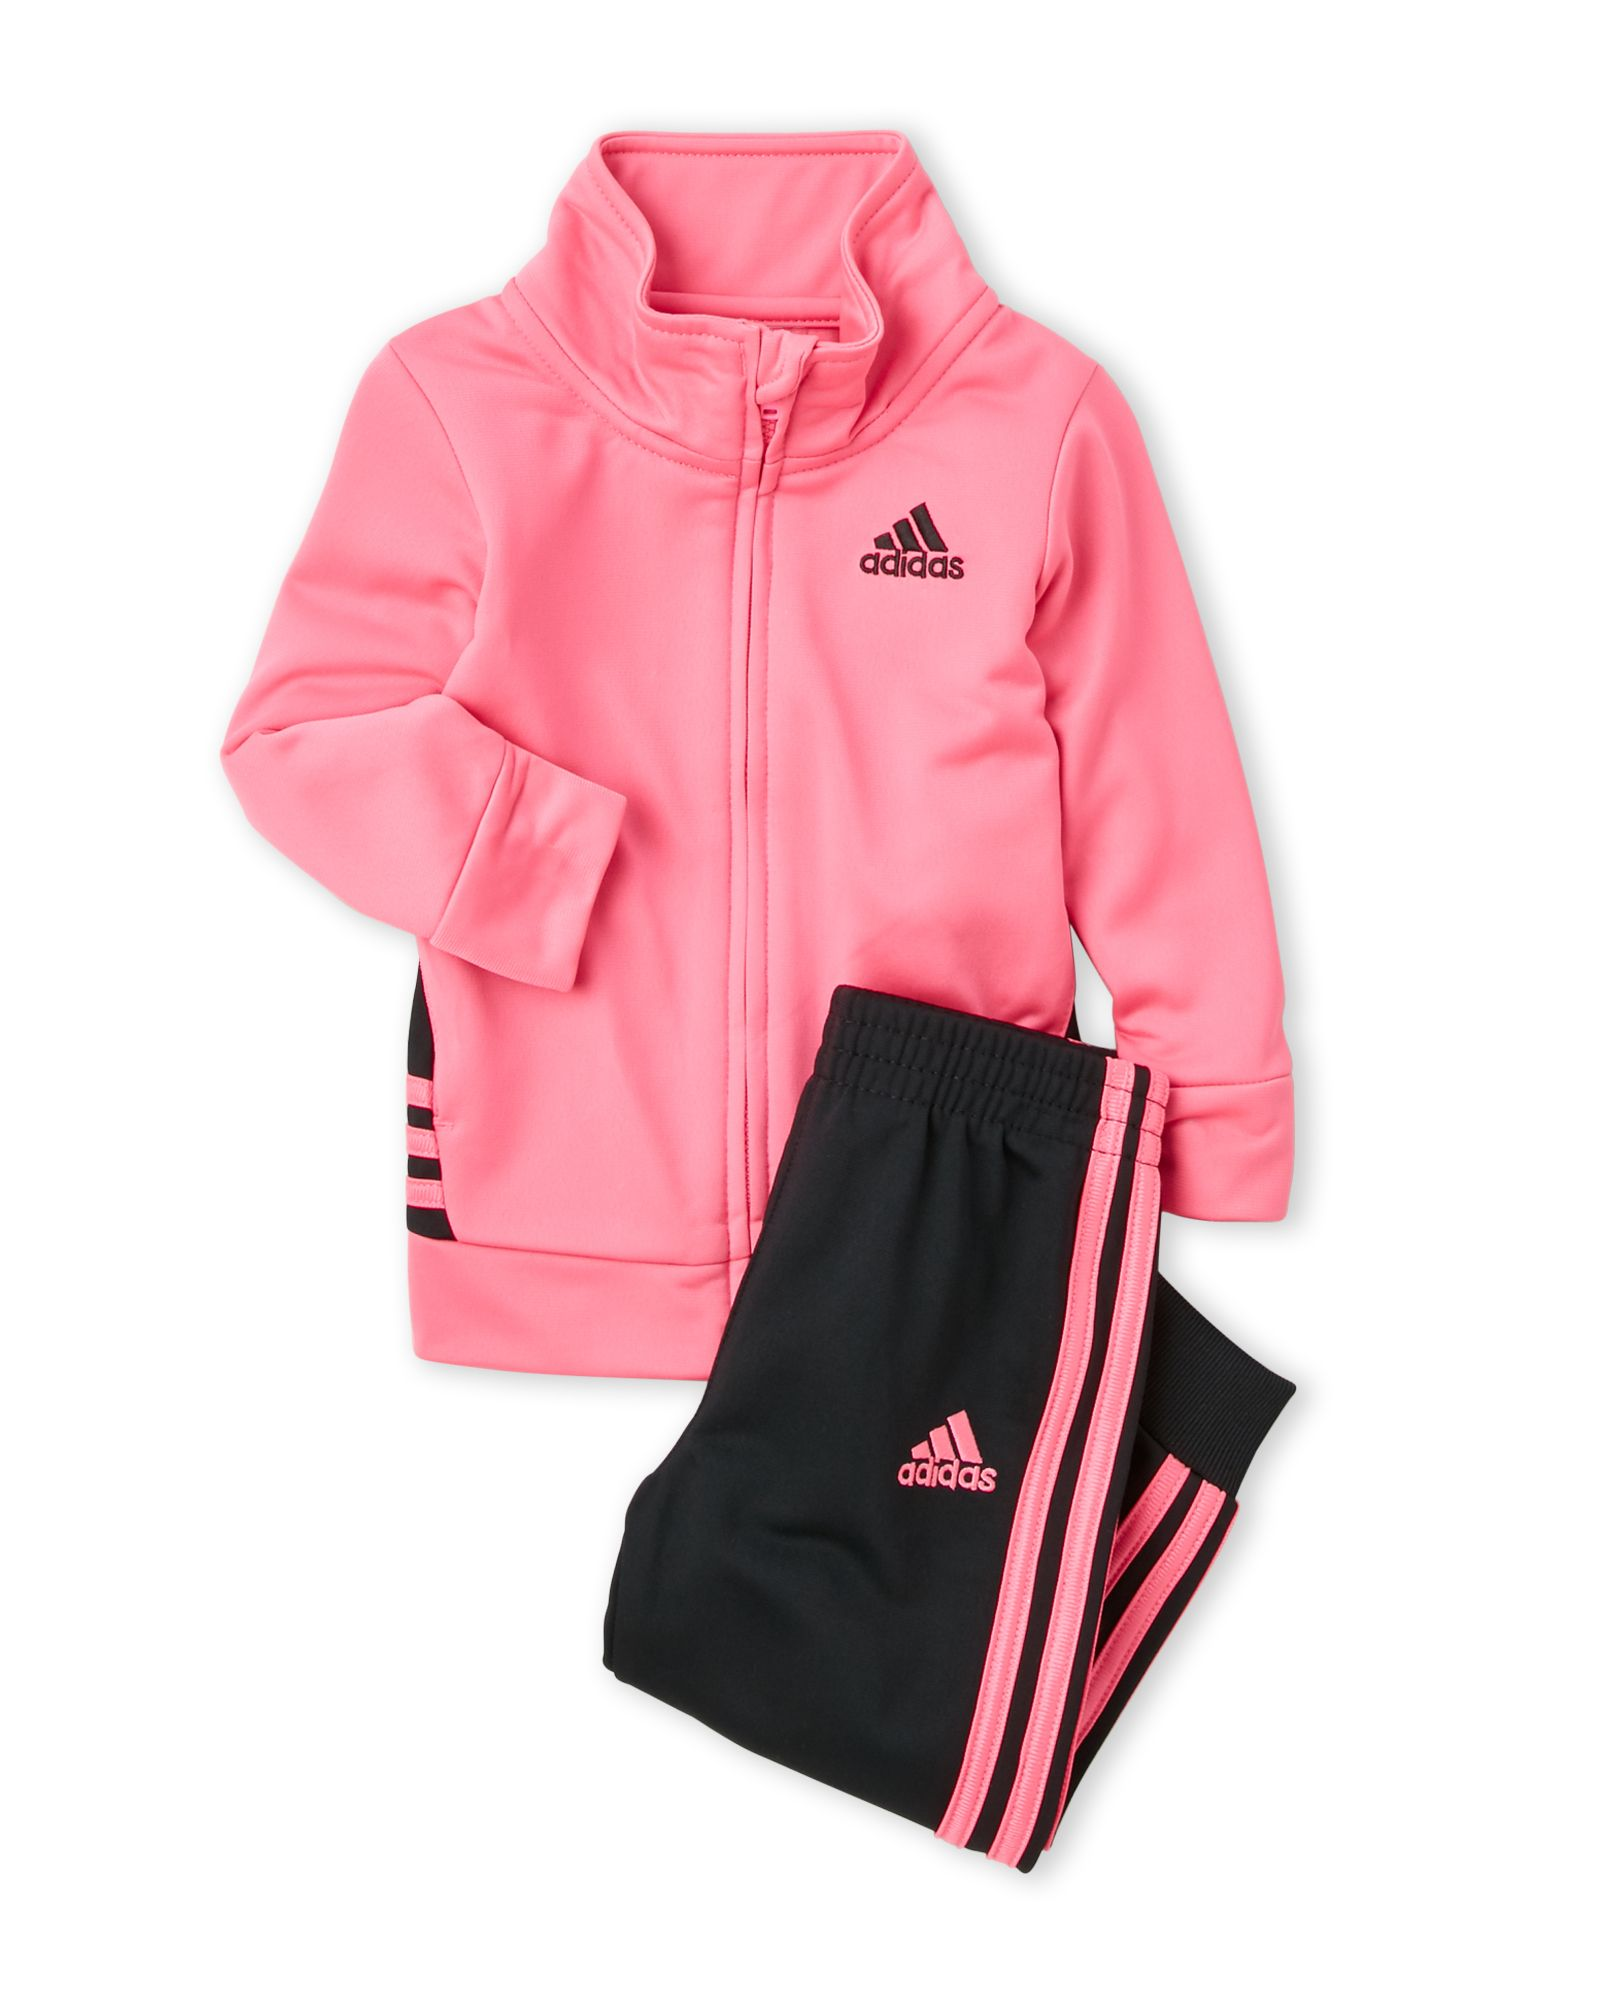 fd9a6de2f29 Adidas (Toddler Girls) Two-Piece On The Move Jogging Suit